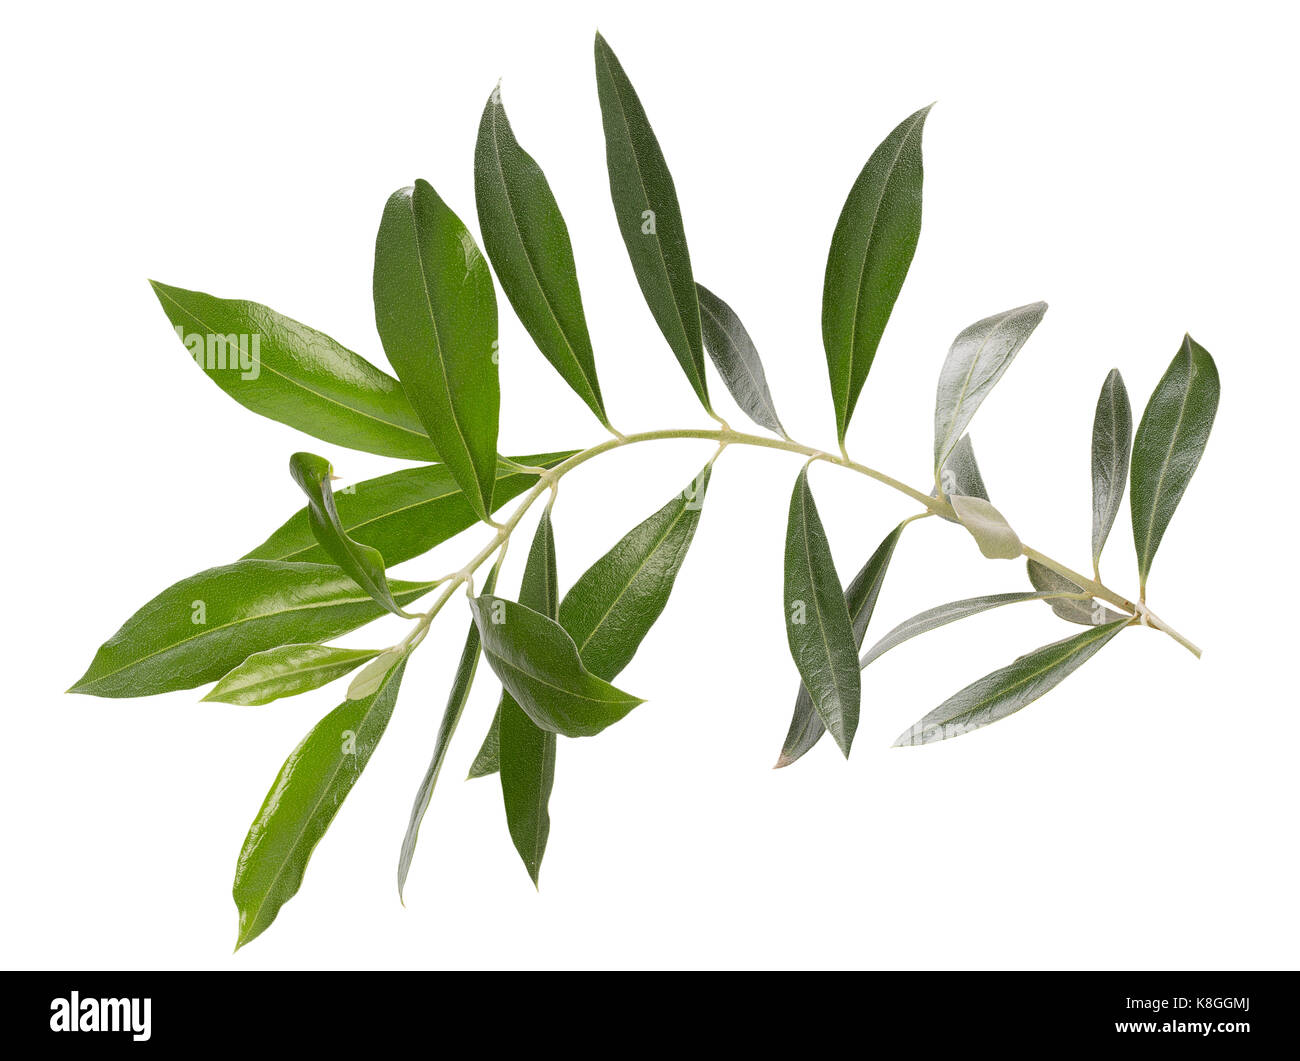 Olive Hand Drawn Stock Photos & Olive Hand Drawn Stock Images - Alamy